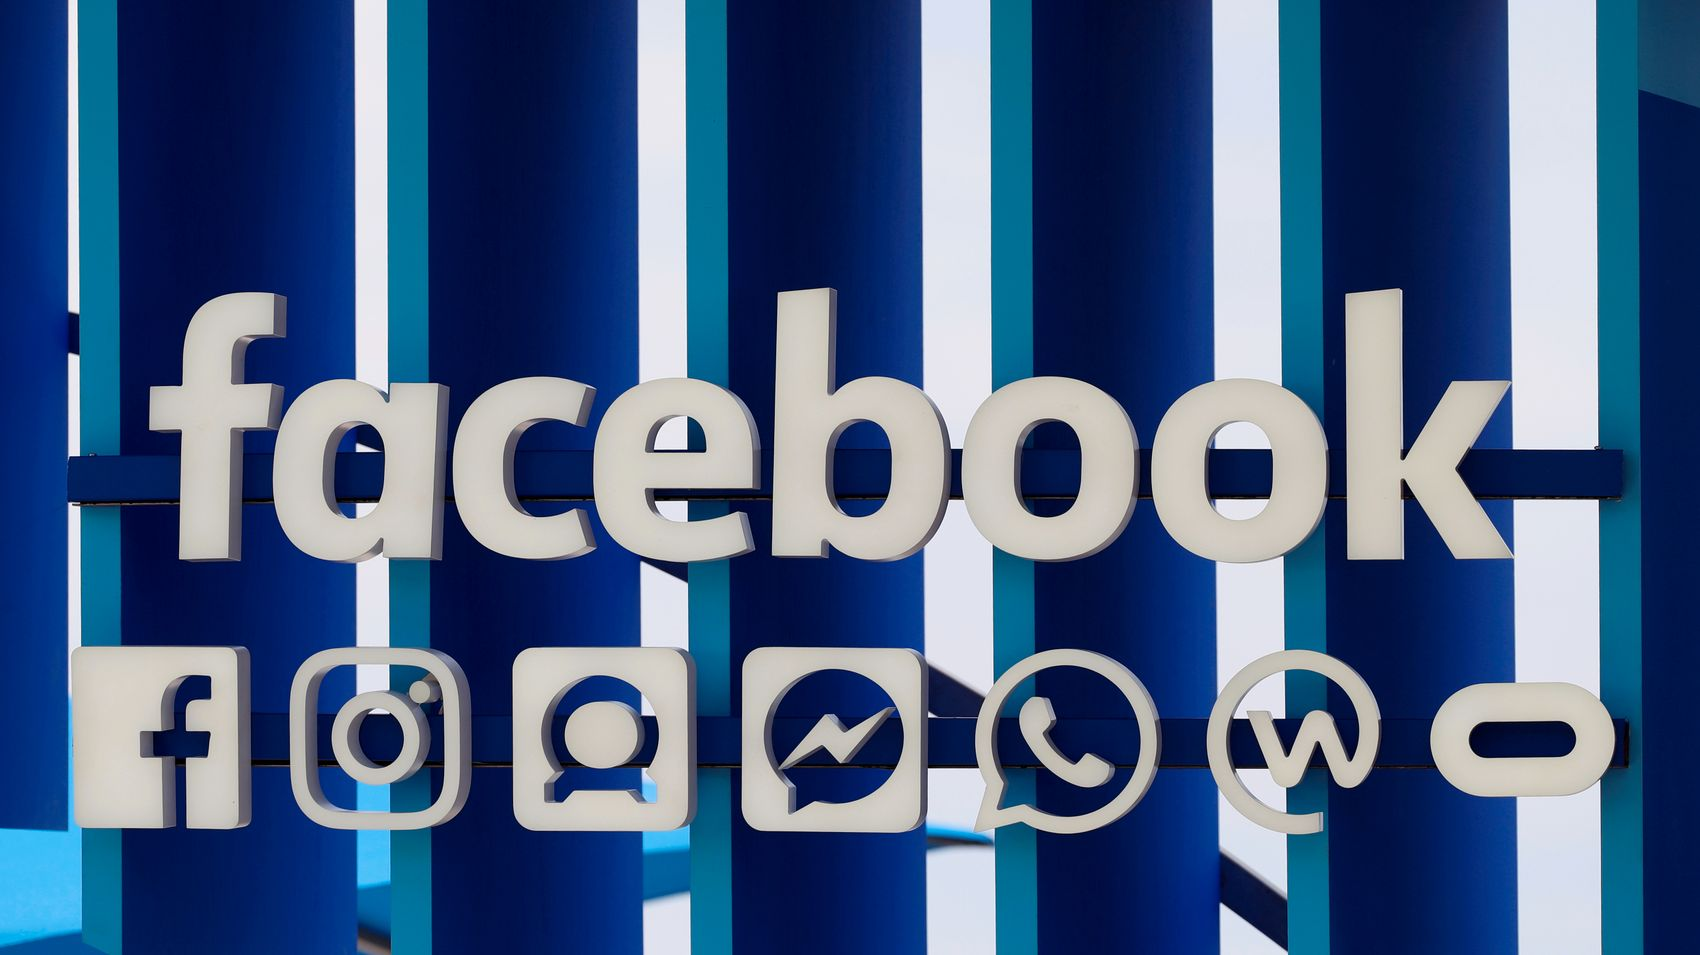 Facebook planning to change its name as it becomes more than a social media company